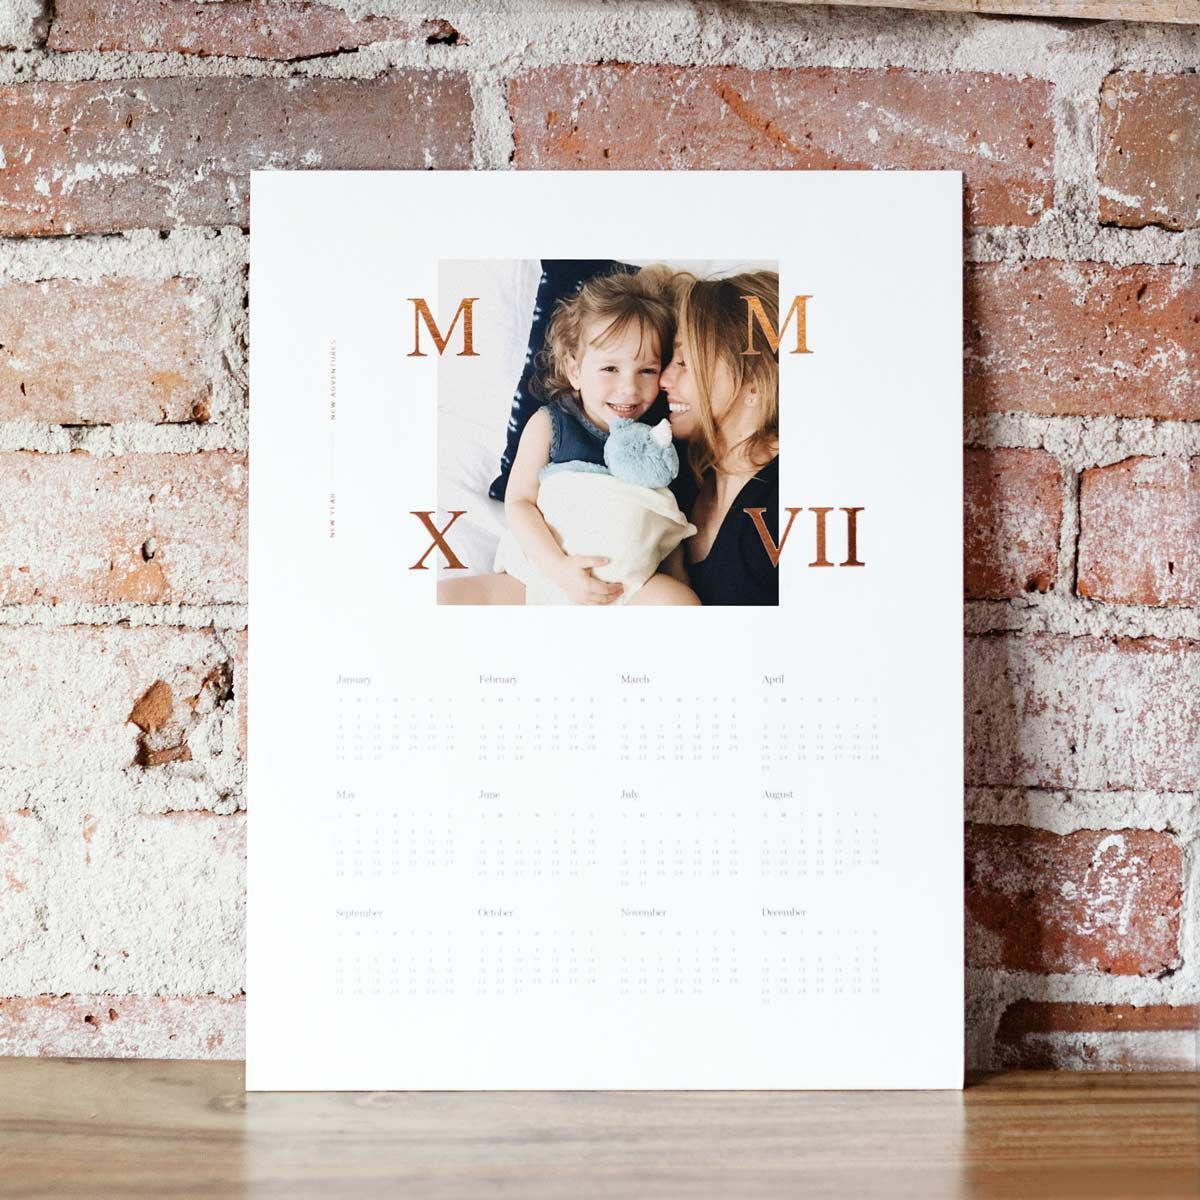 25 personalized photo gift ideas best family photo gifts for 25 personalized photo gift ideas best family photo gifts for christmas jeuxipadfo Choice Image